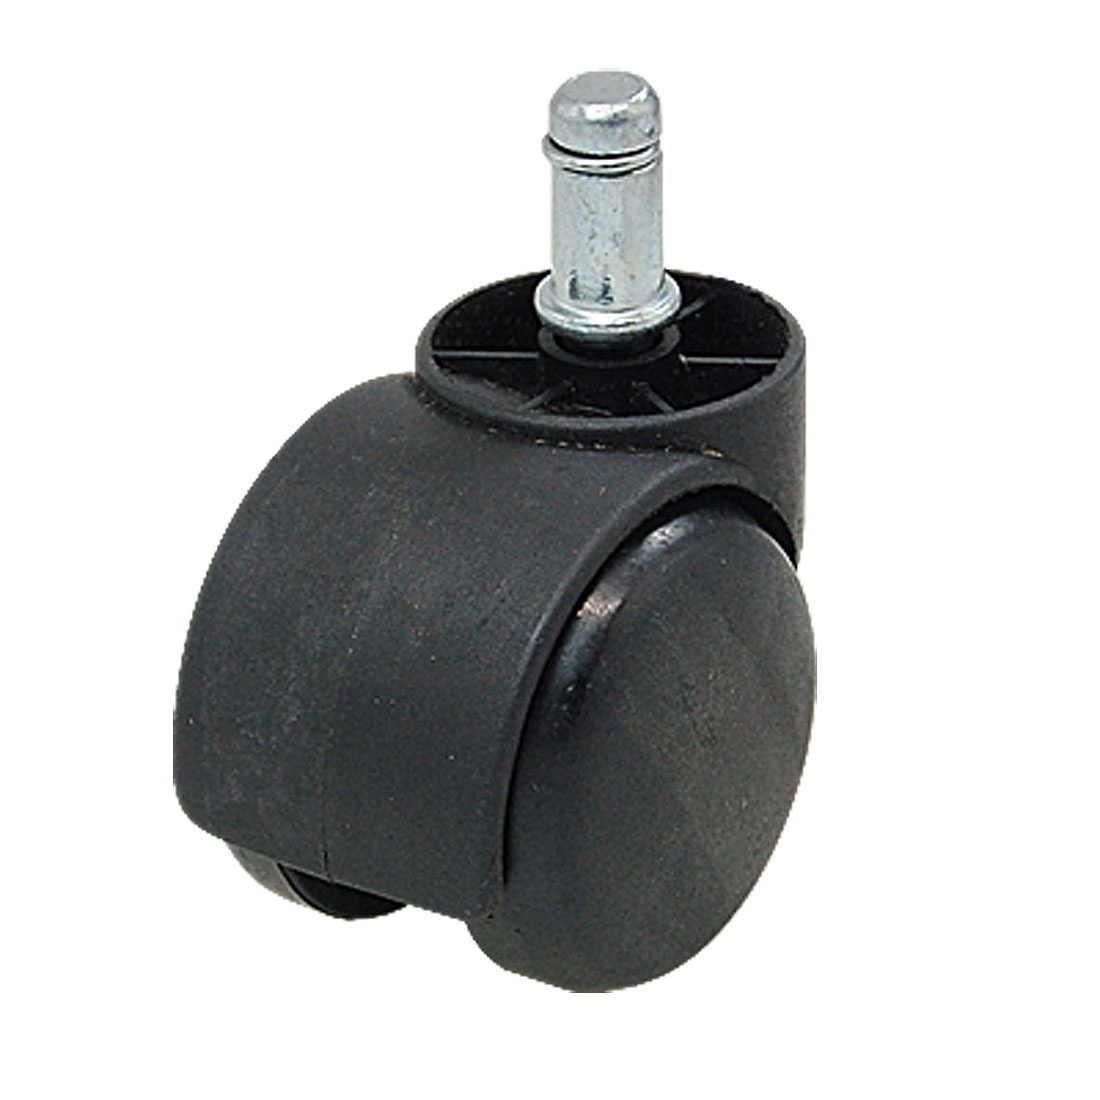 2inch Twin Wheel Chair Casters With Grip Ring Connector Black